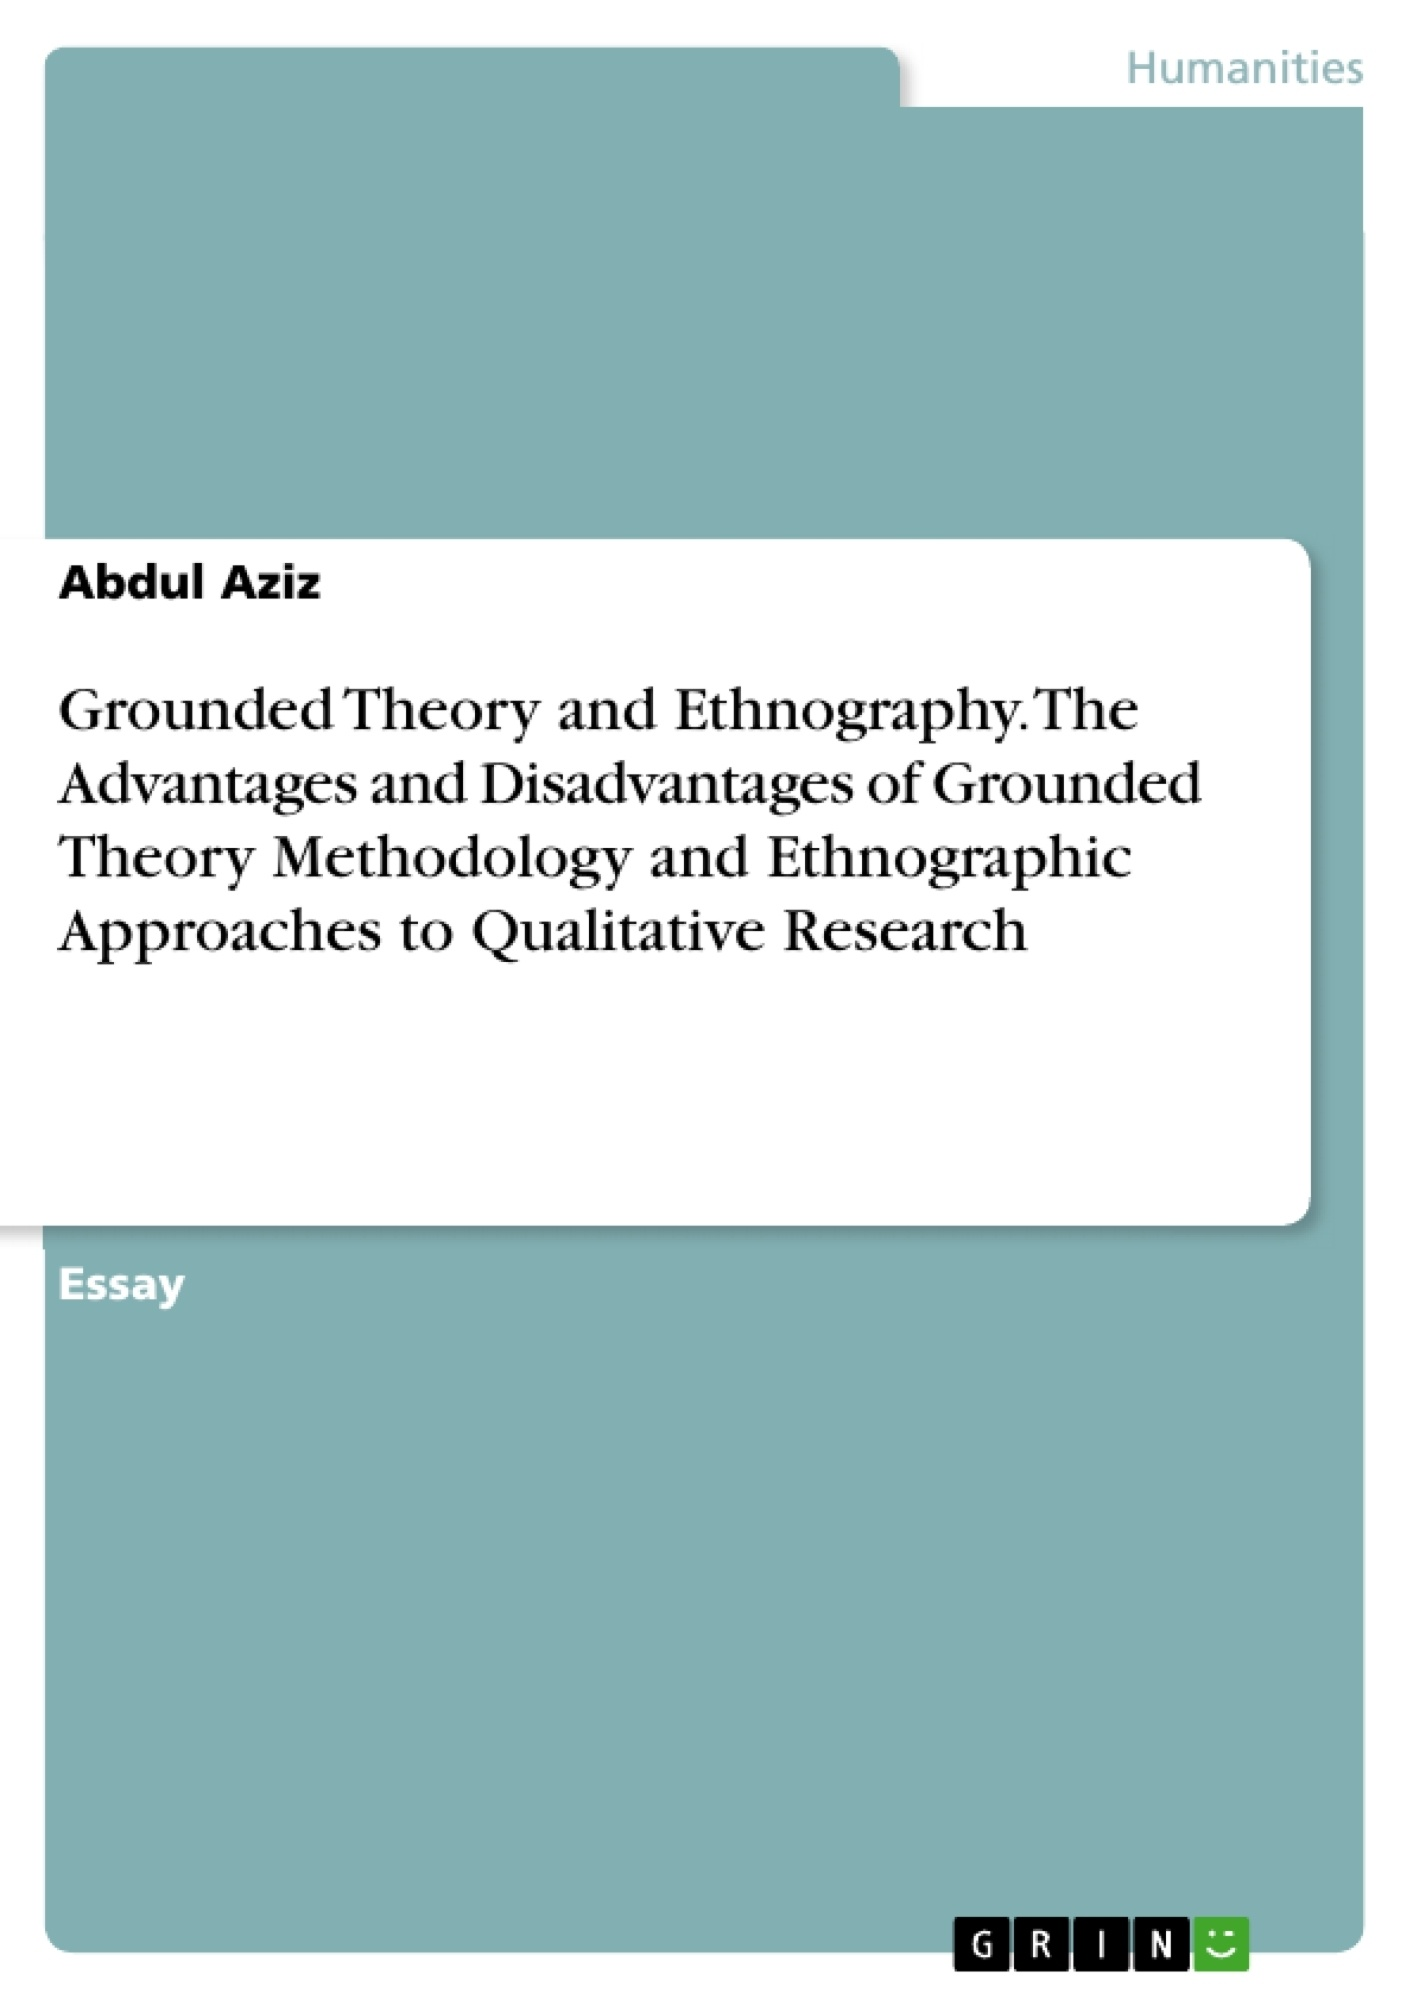 Constructivist grounded theory dissertation The Digital Leaders have worked  so hard Using snap to grid to